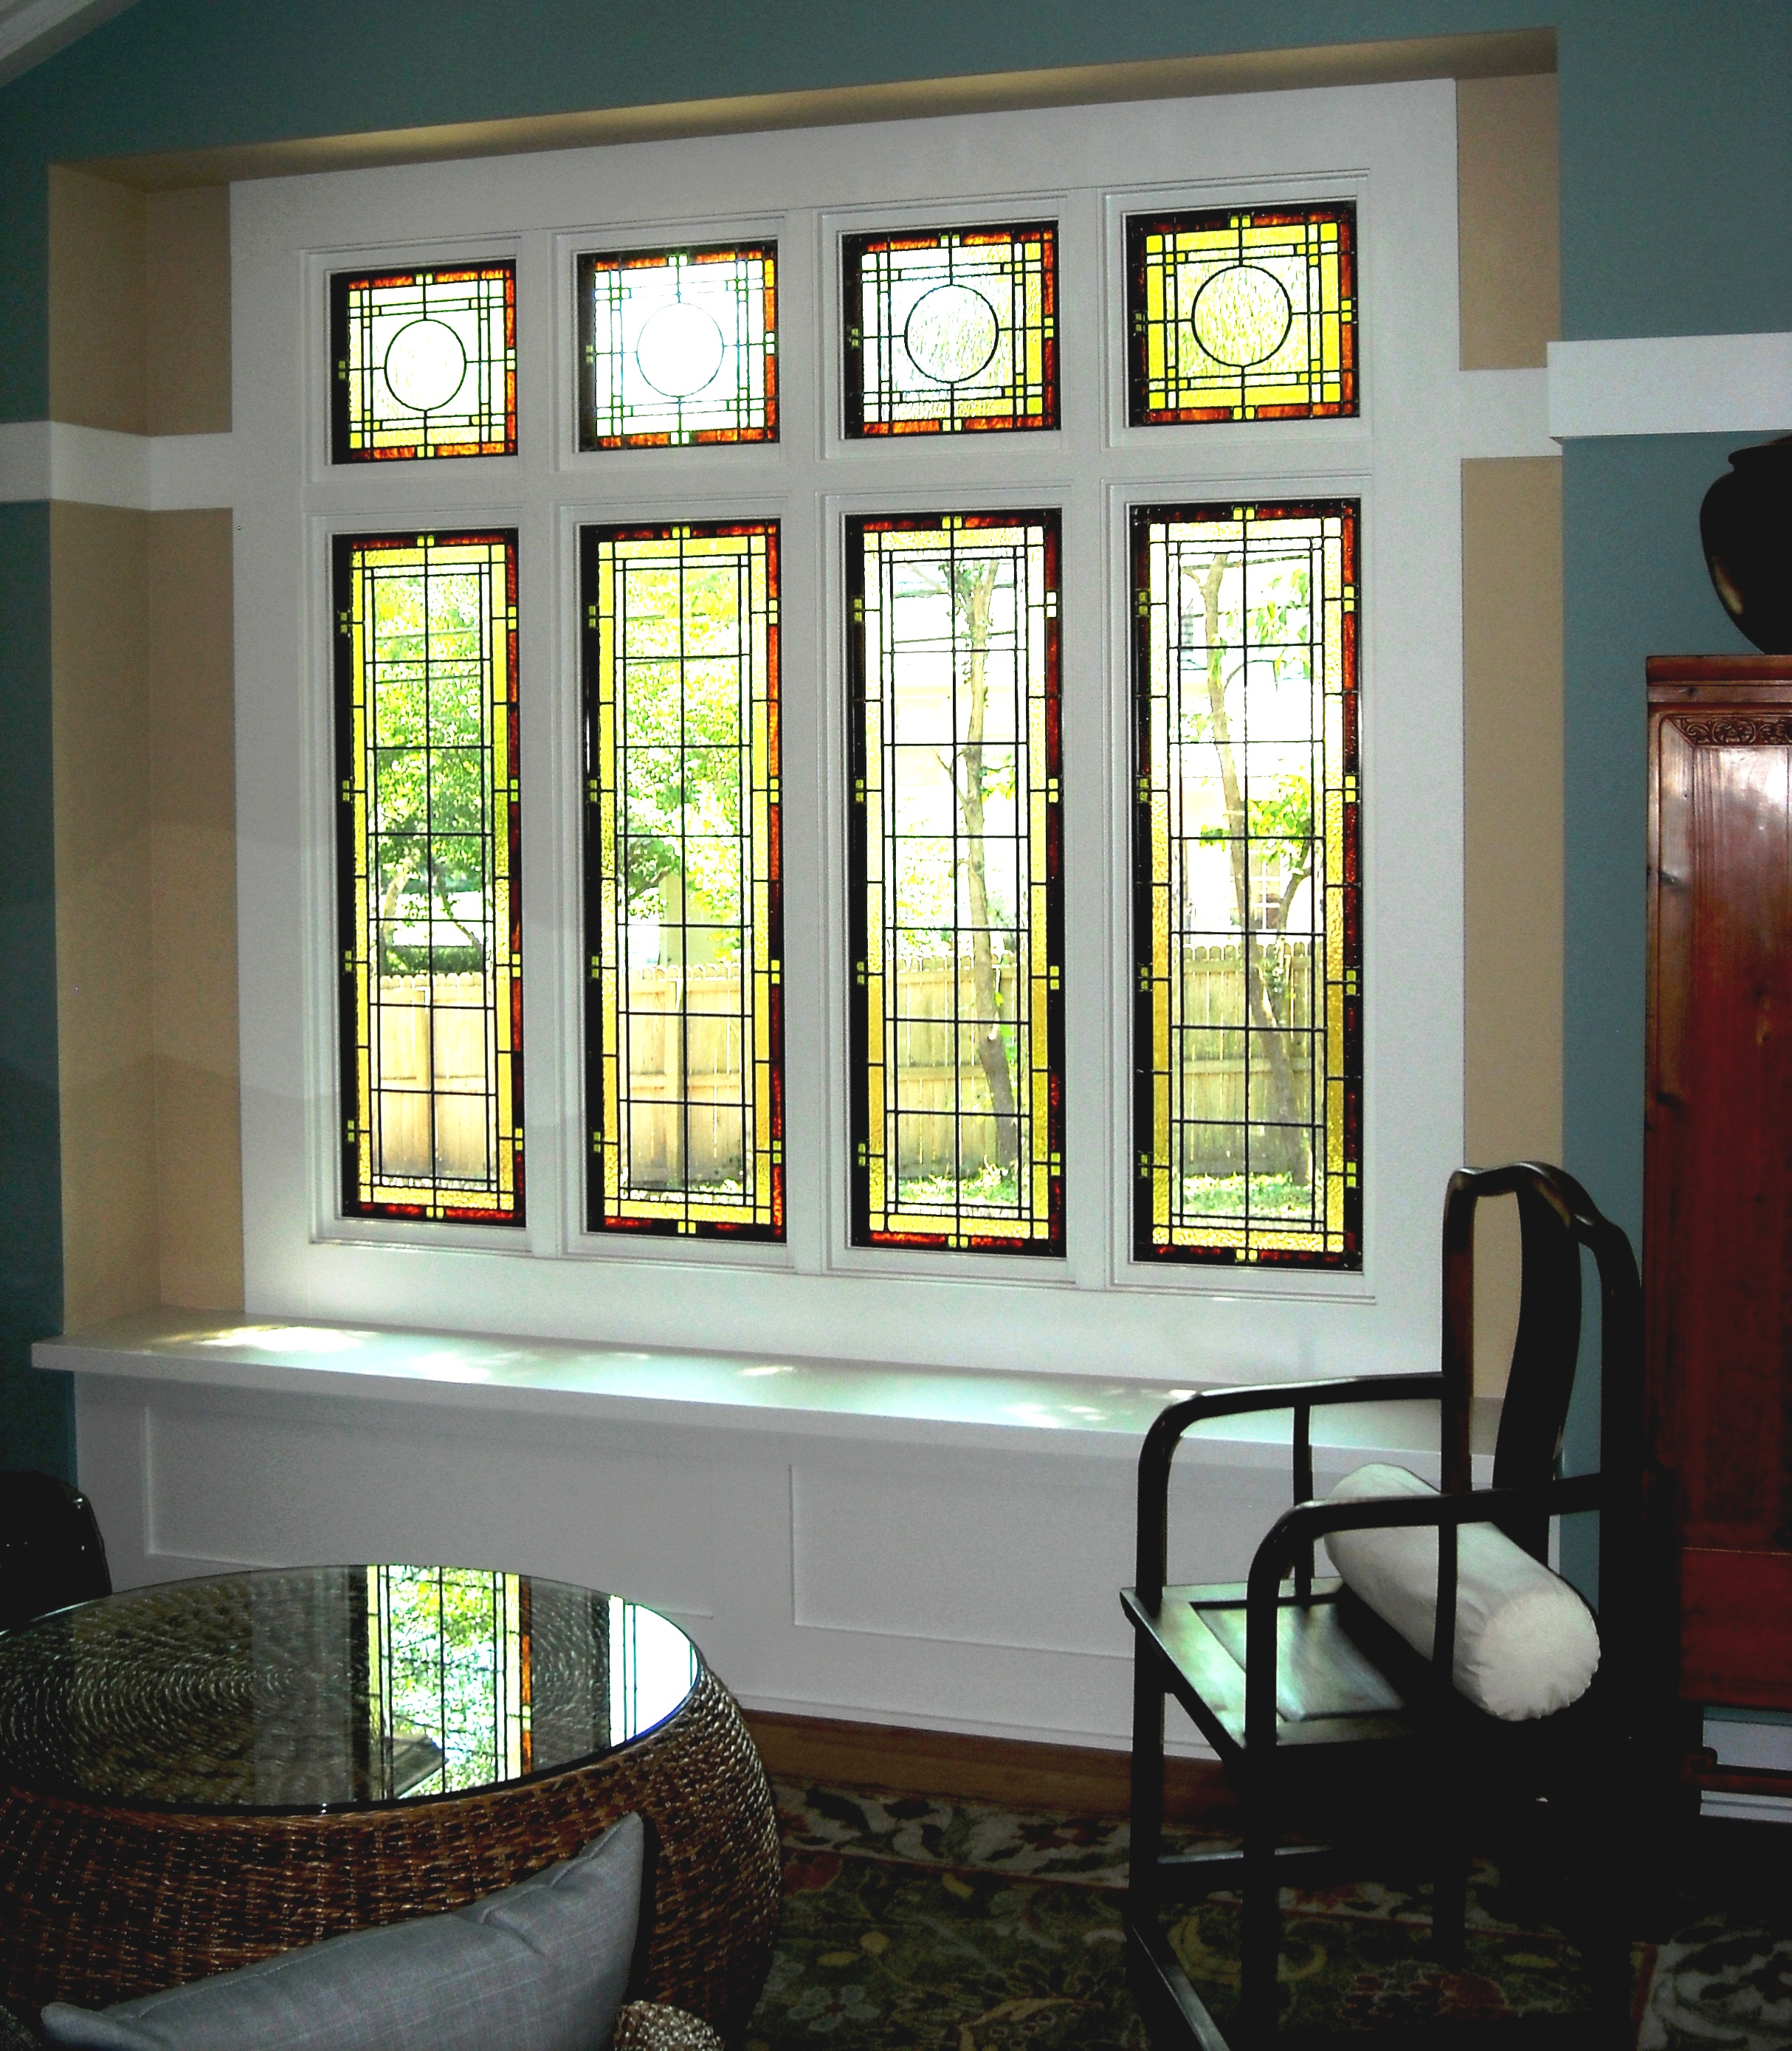 Advantages and disadvantages of stained glass windows for for Windows for your home